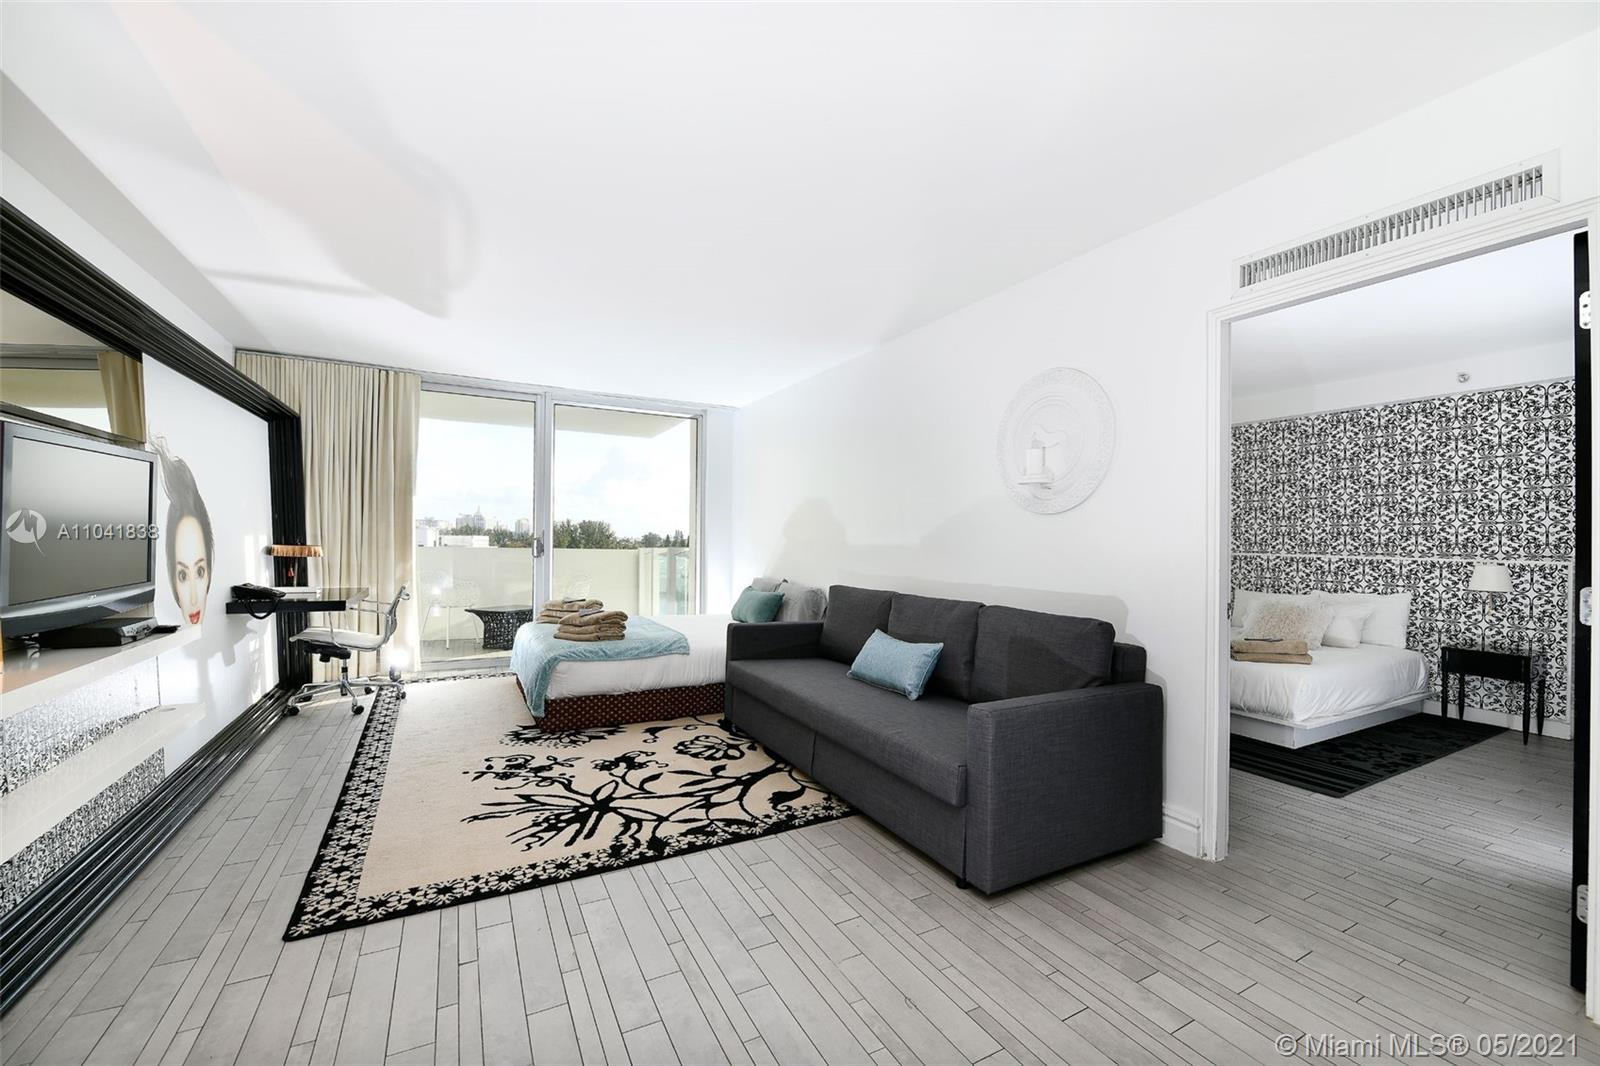 Stunning corner unit with spectacular views of Miami Skyline, just minutes away from Downtown Miami, The Design District ,Wynwood, the beach and shopping areas. Unit NOT in the hotel program, owner using a third party management team, with a very attractive return on investment. Future owners can use the unit as an investment property or for personal use. Assessments have been paid by the current sellers! The building underwent $20M renovation creating a tropical modern environment and comprising a contemporary Mediterranean restaurant and two Sunset bars with multiple spaces for entertainment, offering magnificent views of the Biscayne Bay estuary and the Downtown Miami. The unit comes fully furnished and among very few units that have a balcony! All offers considered!